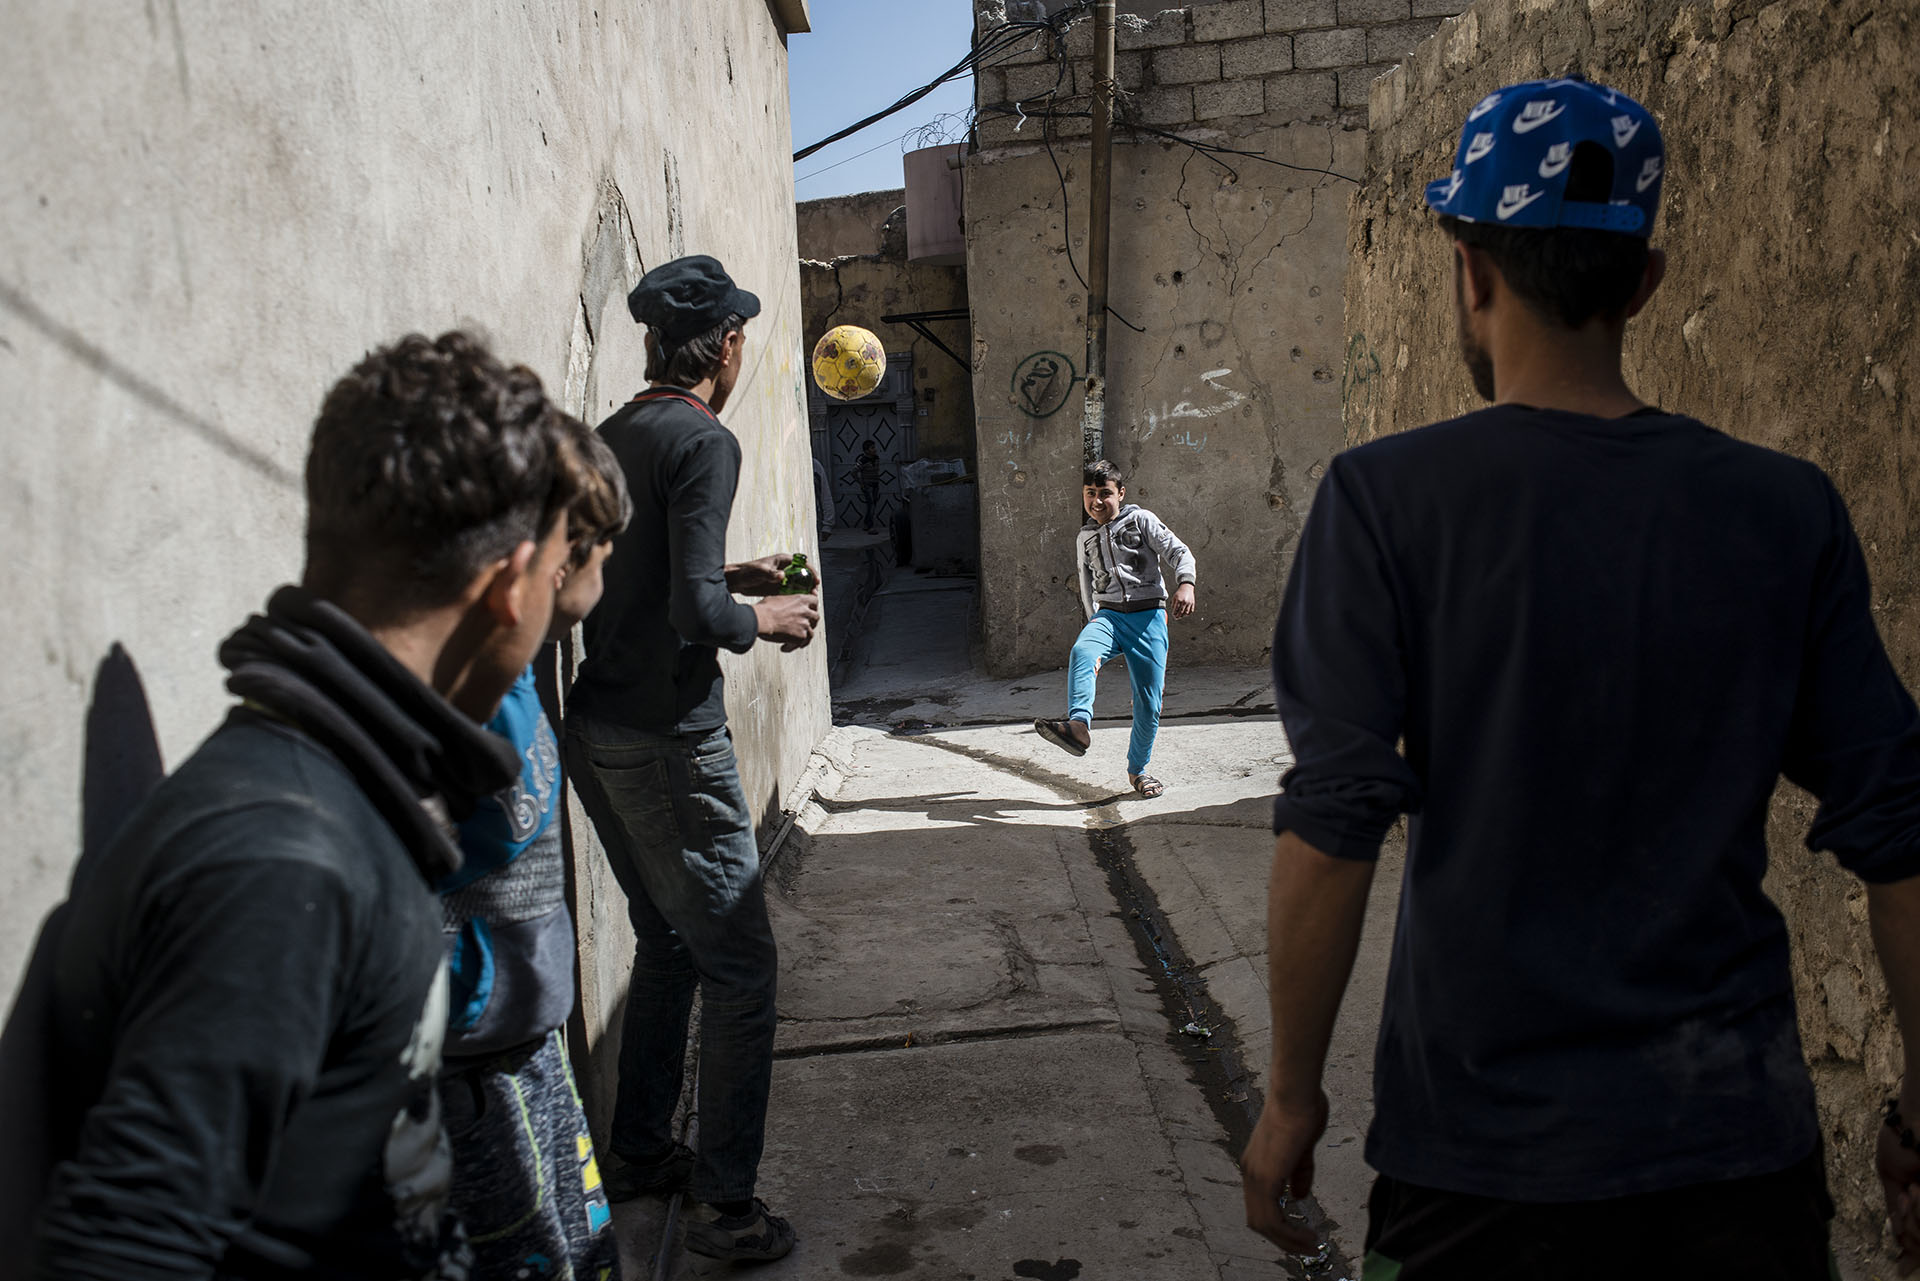 Ali, a boy who lost his arm in a mortar strike while his family was displaced, plays with his friends in the Old City once again.  (Alex Potter/GroundTruth Project)